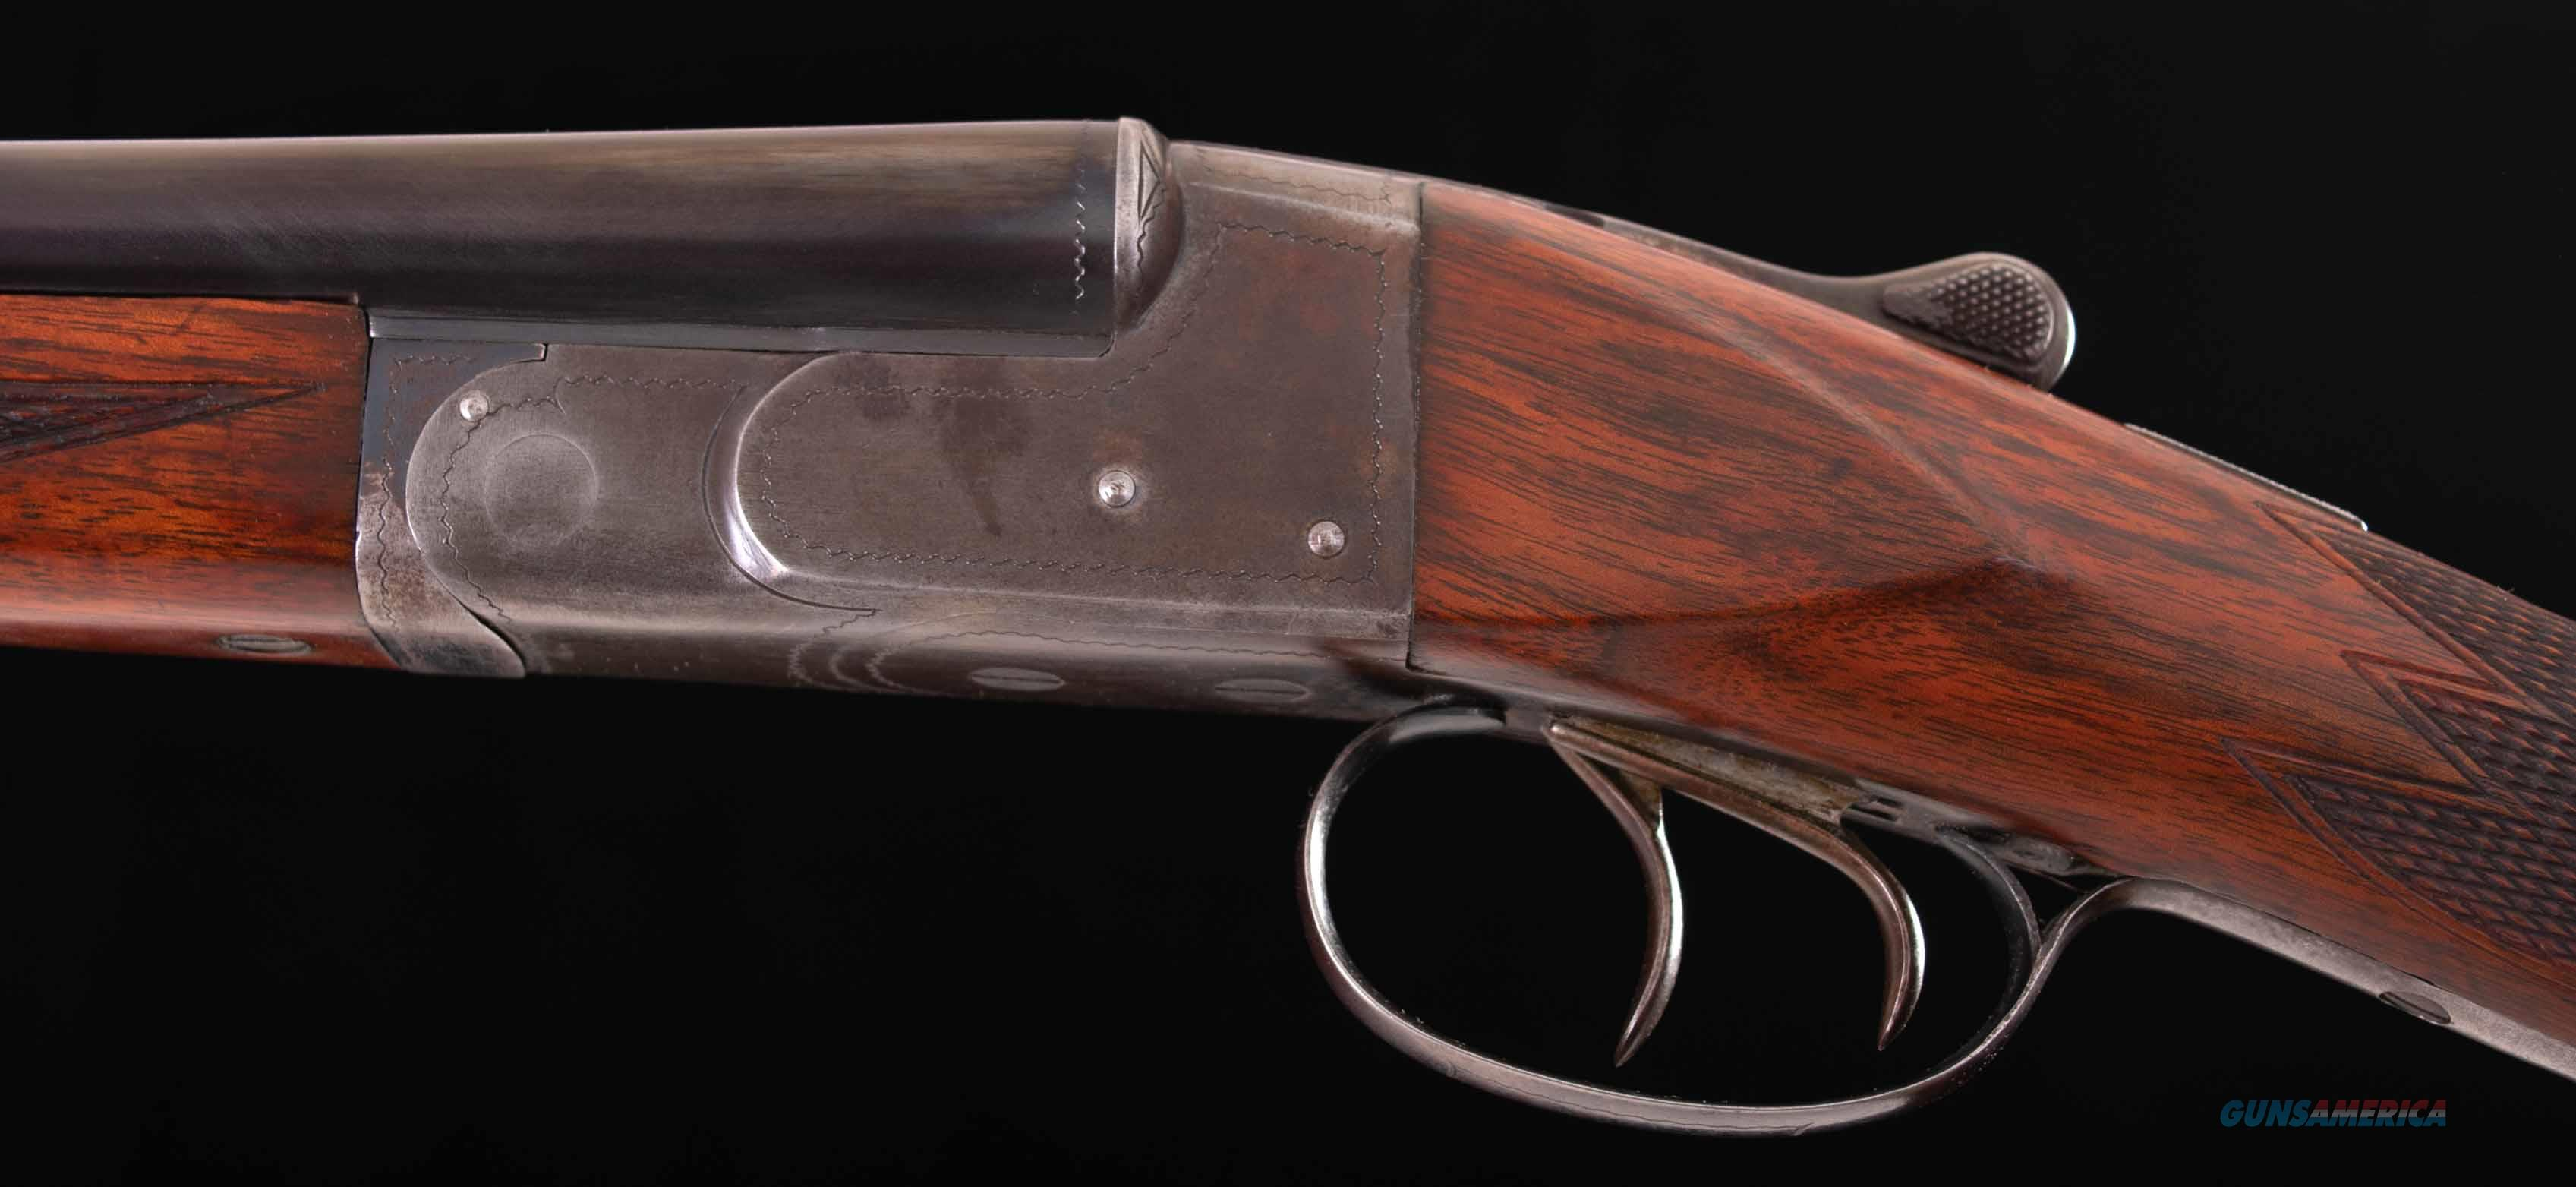 Ithaca NID 28 Gauge – FACTORY ENGLISH STOCK, RARE! vintage firearms inc   Guns > Shotguns > Ithaca Shotguns > SxS